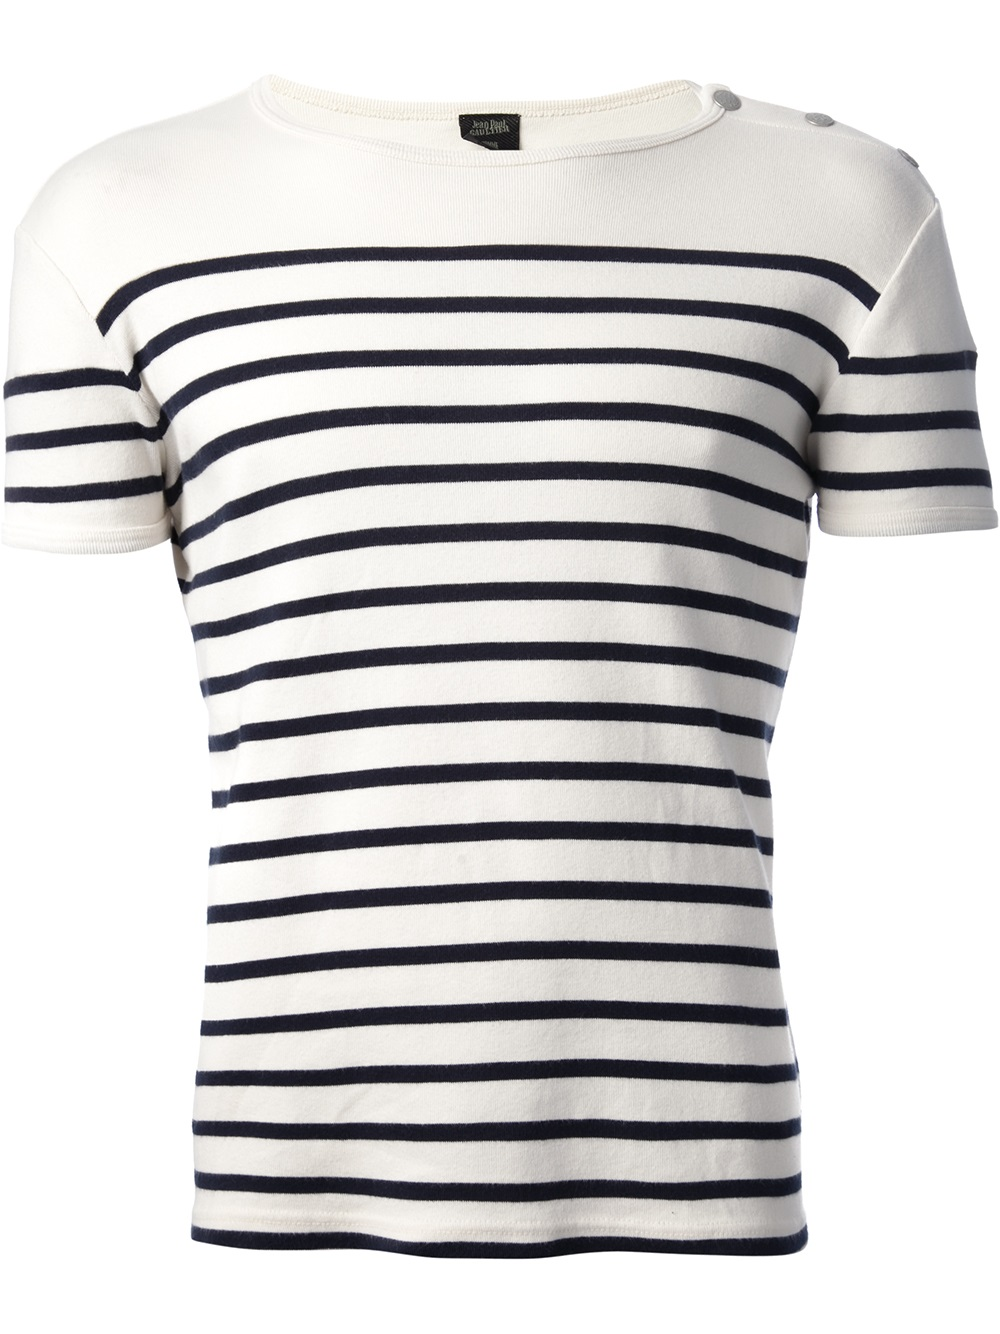 Blue And White Striped T Shirt Men